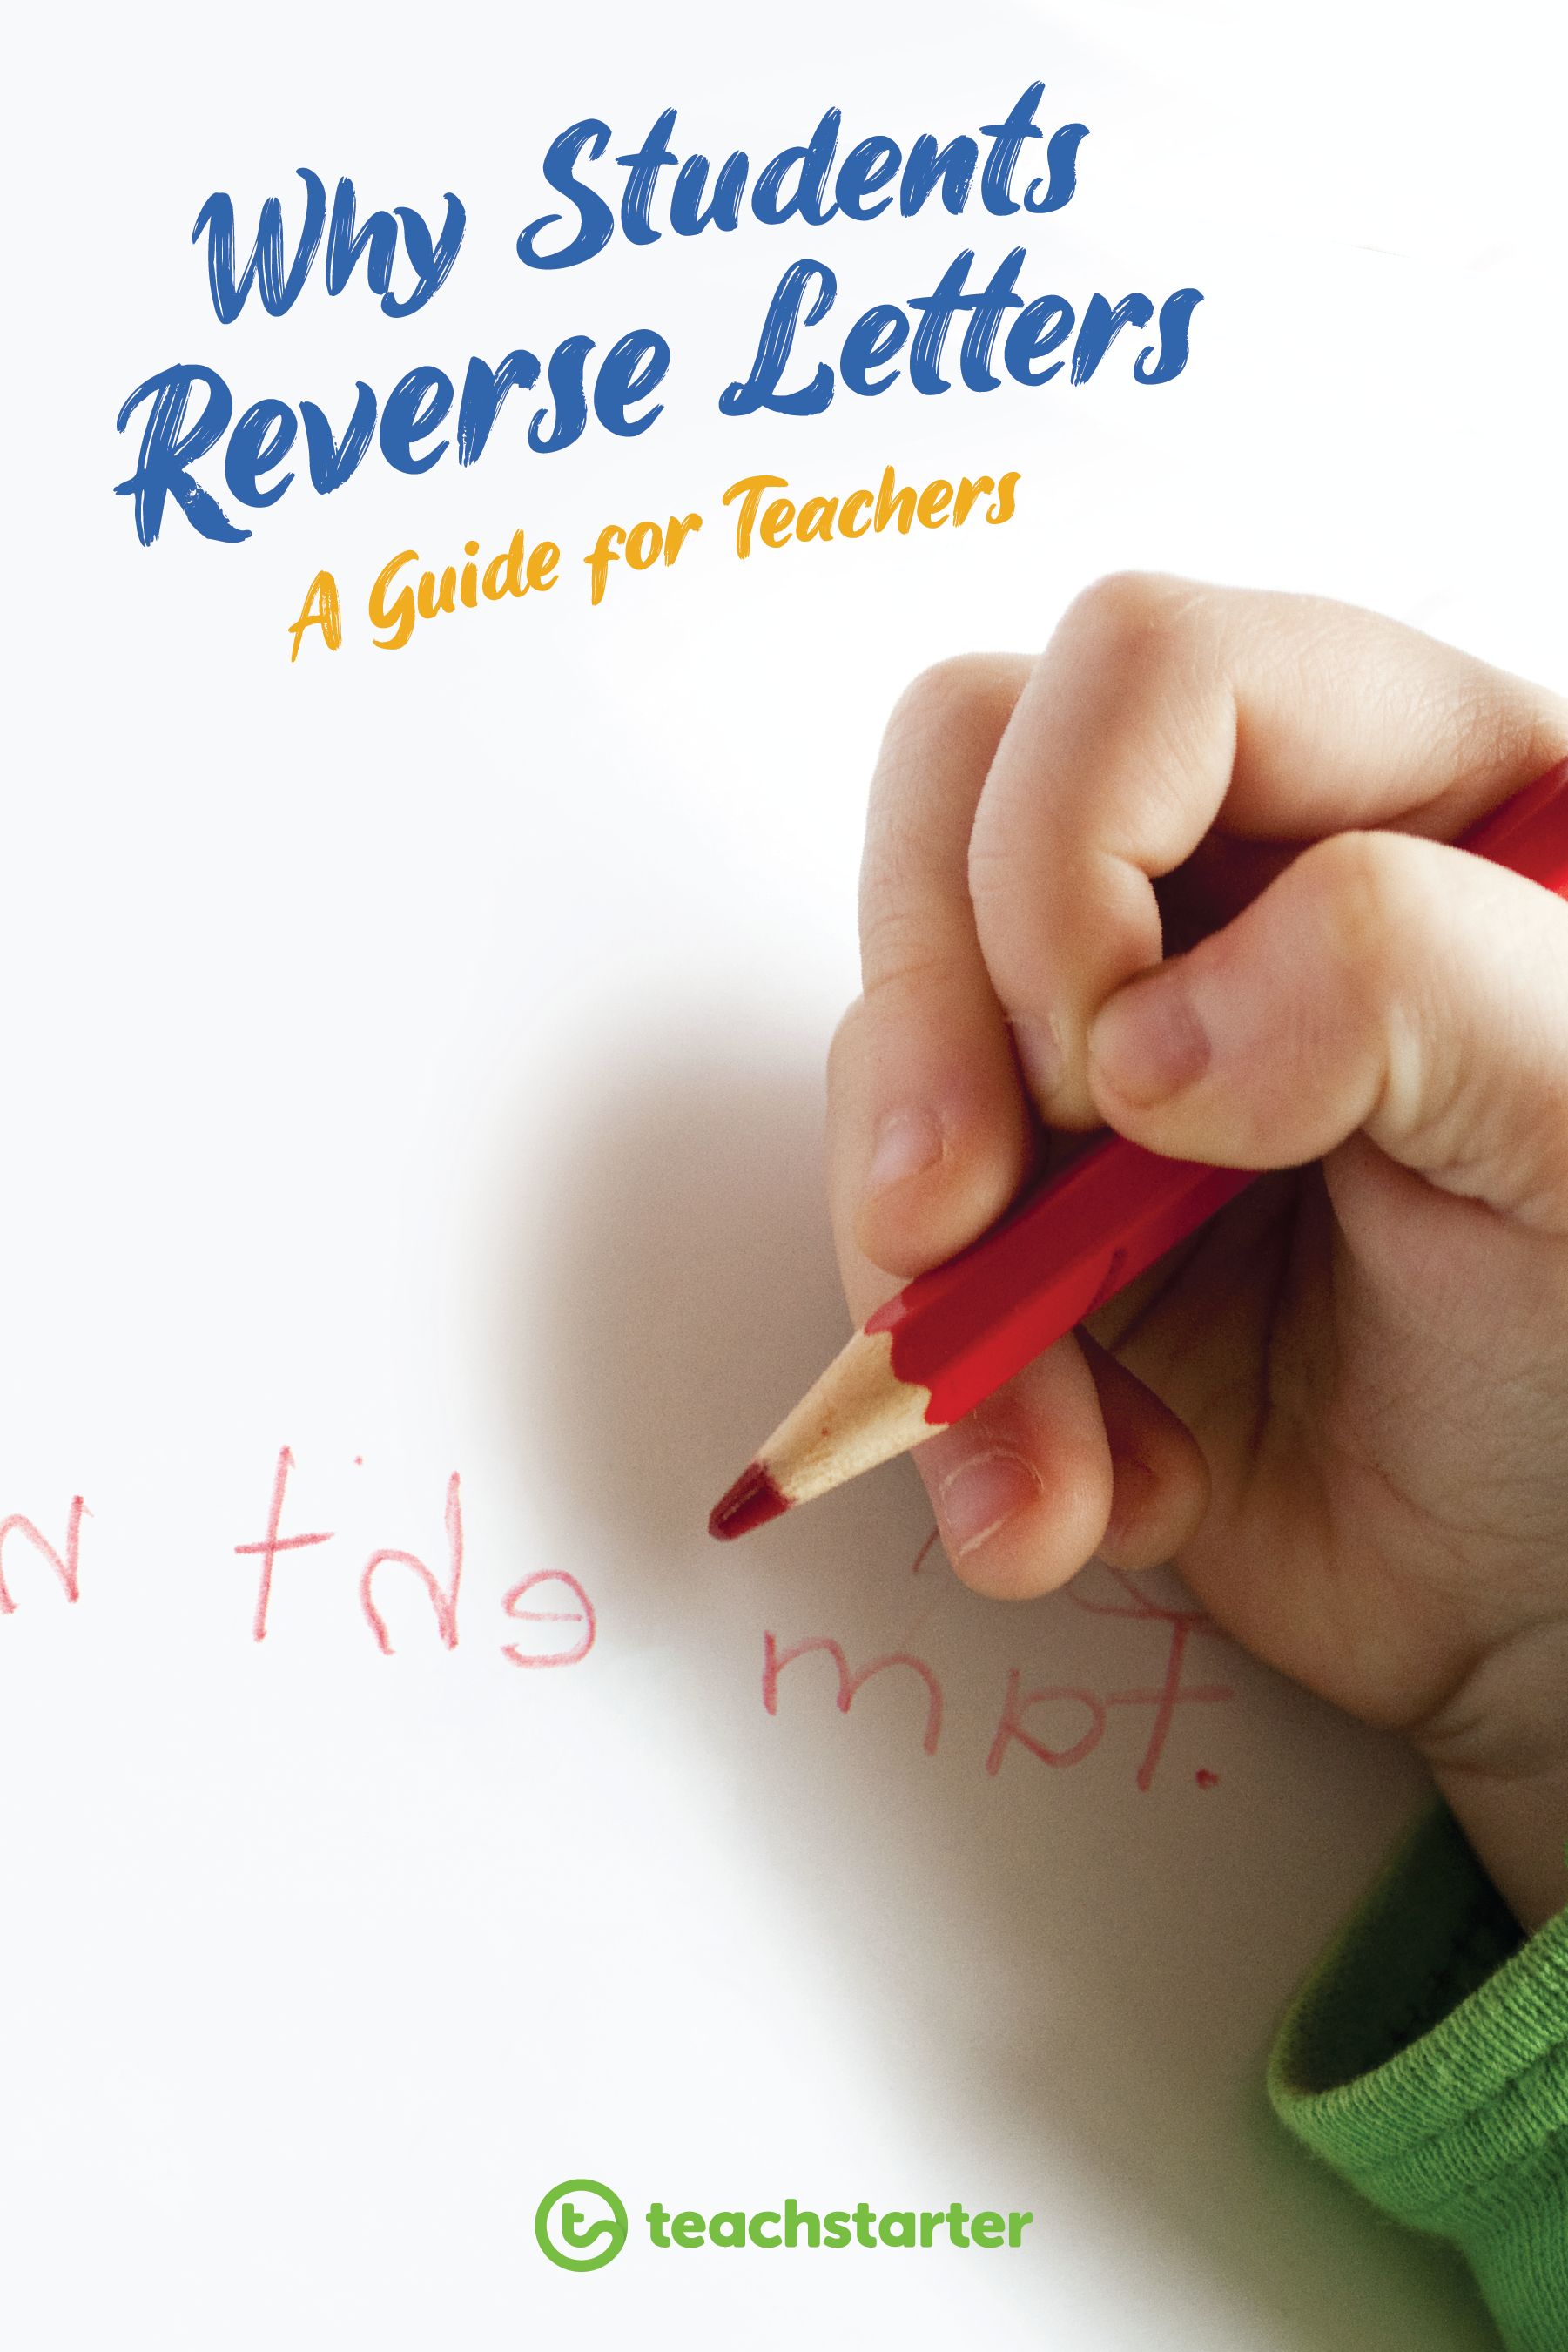 Why Students Reverse Letters